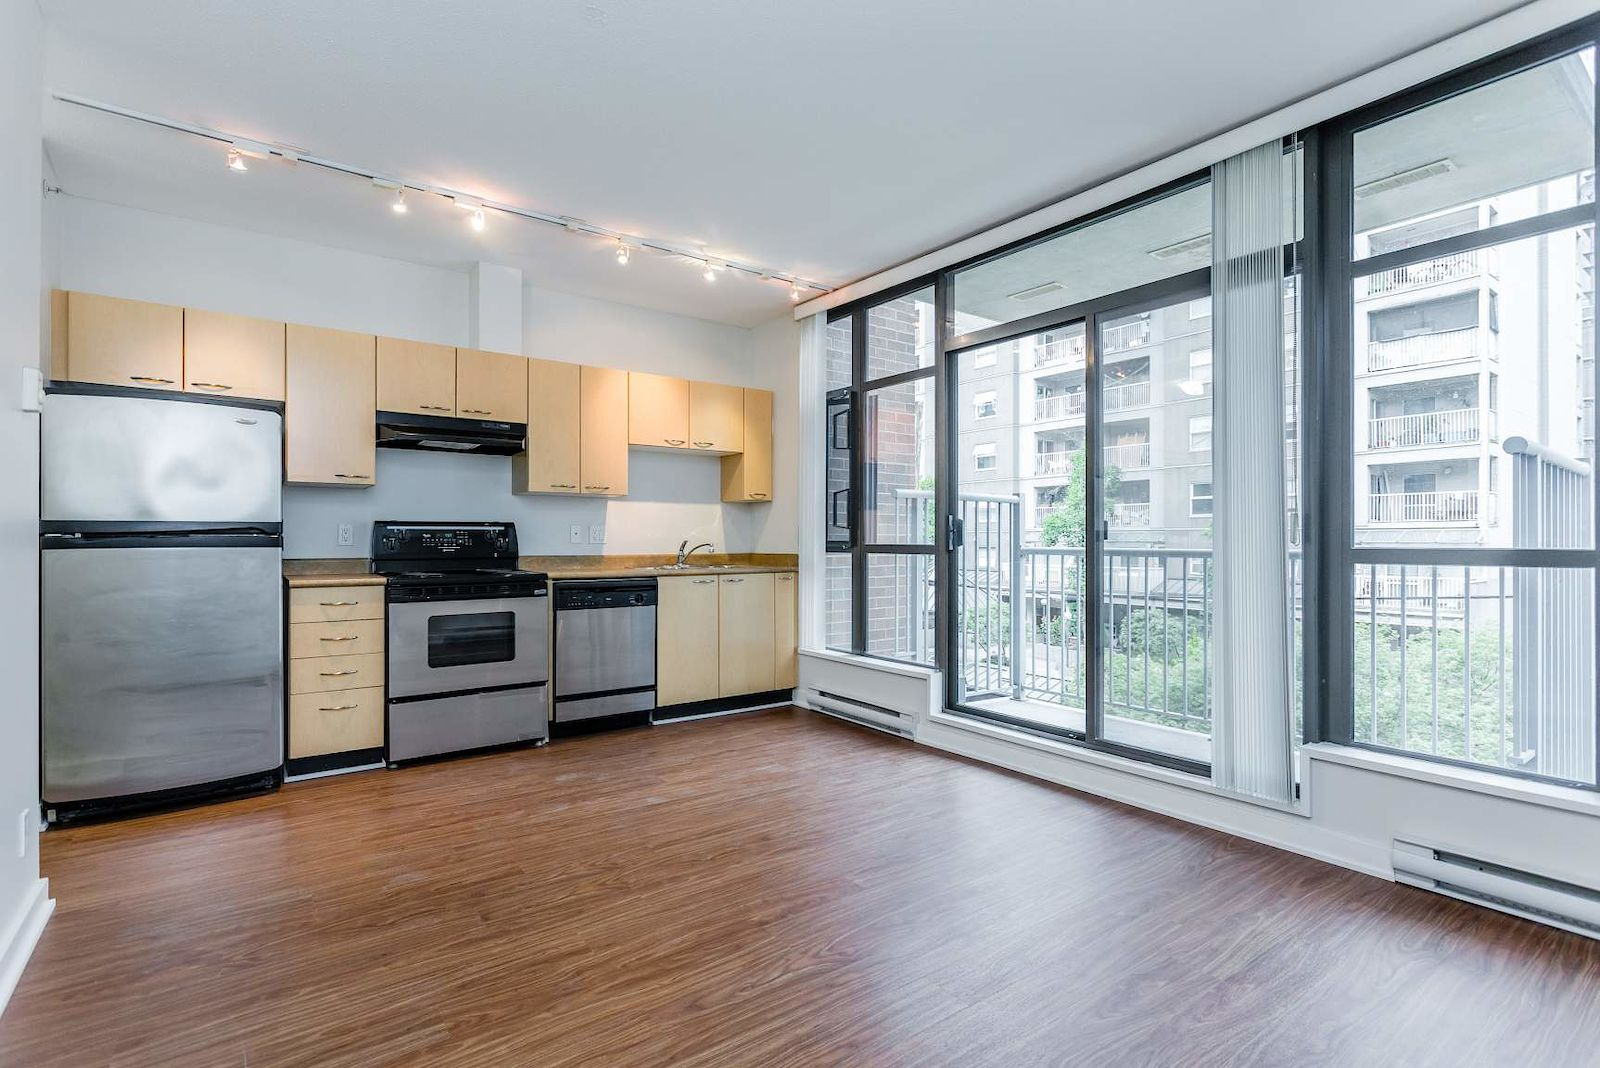 Vancouver Pet Friendly Apartment For Rent | Yaletown | The ...